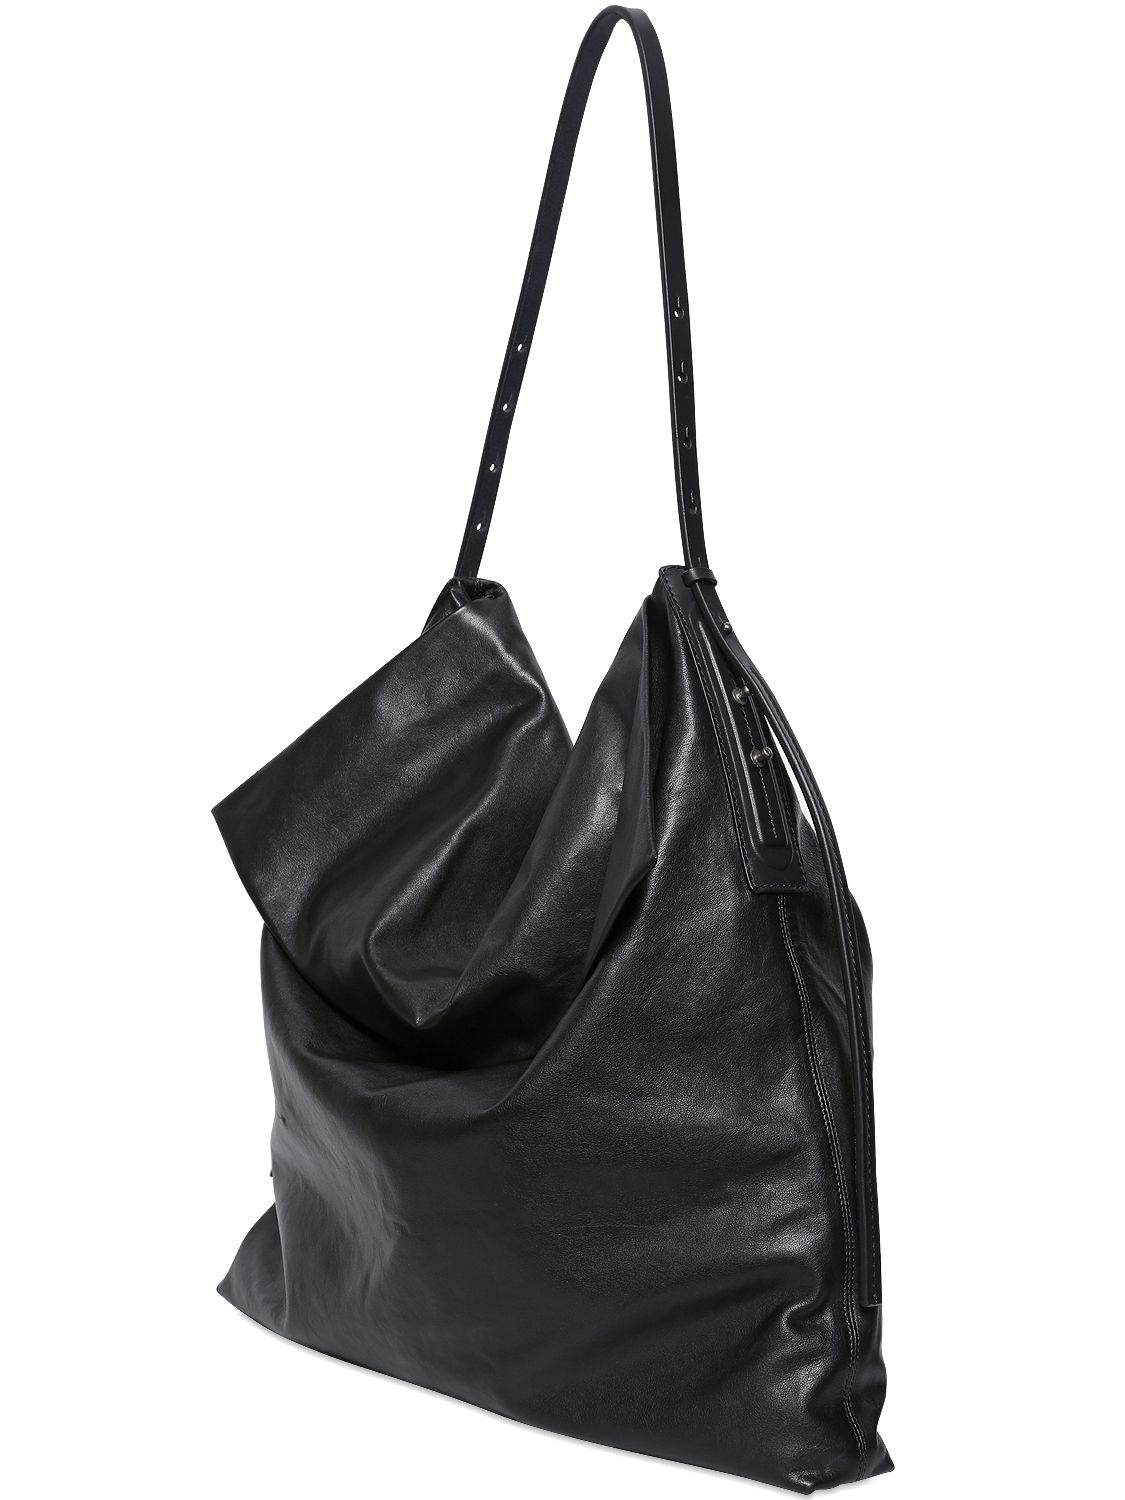 Discount Footlocker Pictures Rick Owens hobo tote bag Sale Popular Buy Cheap Discounts Outlet Choice Sale Low Shipping Fee kB2KJTCVGM